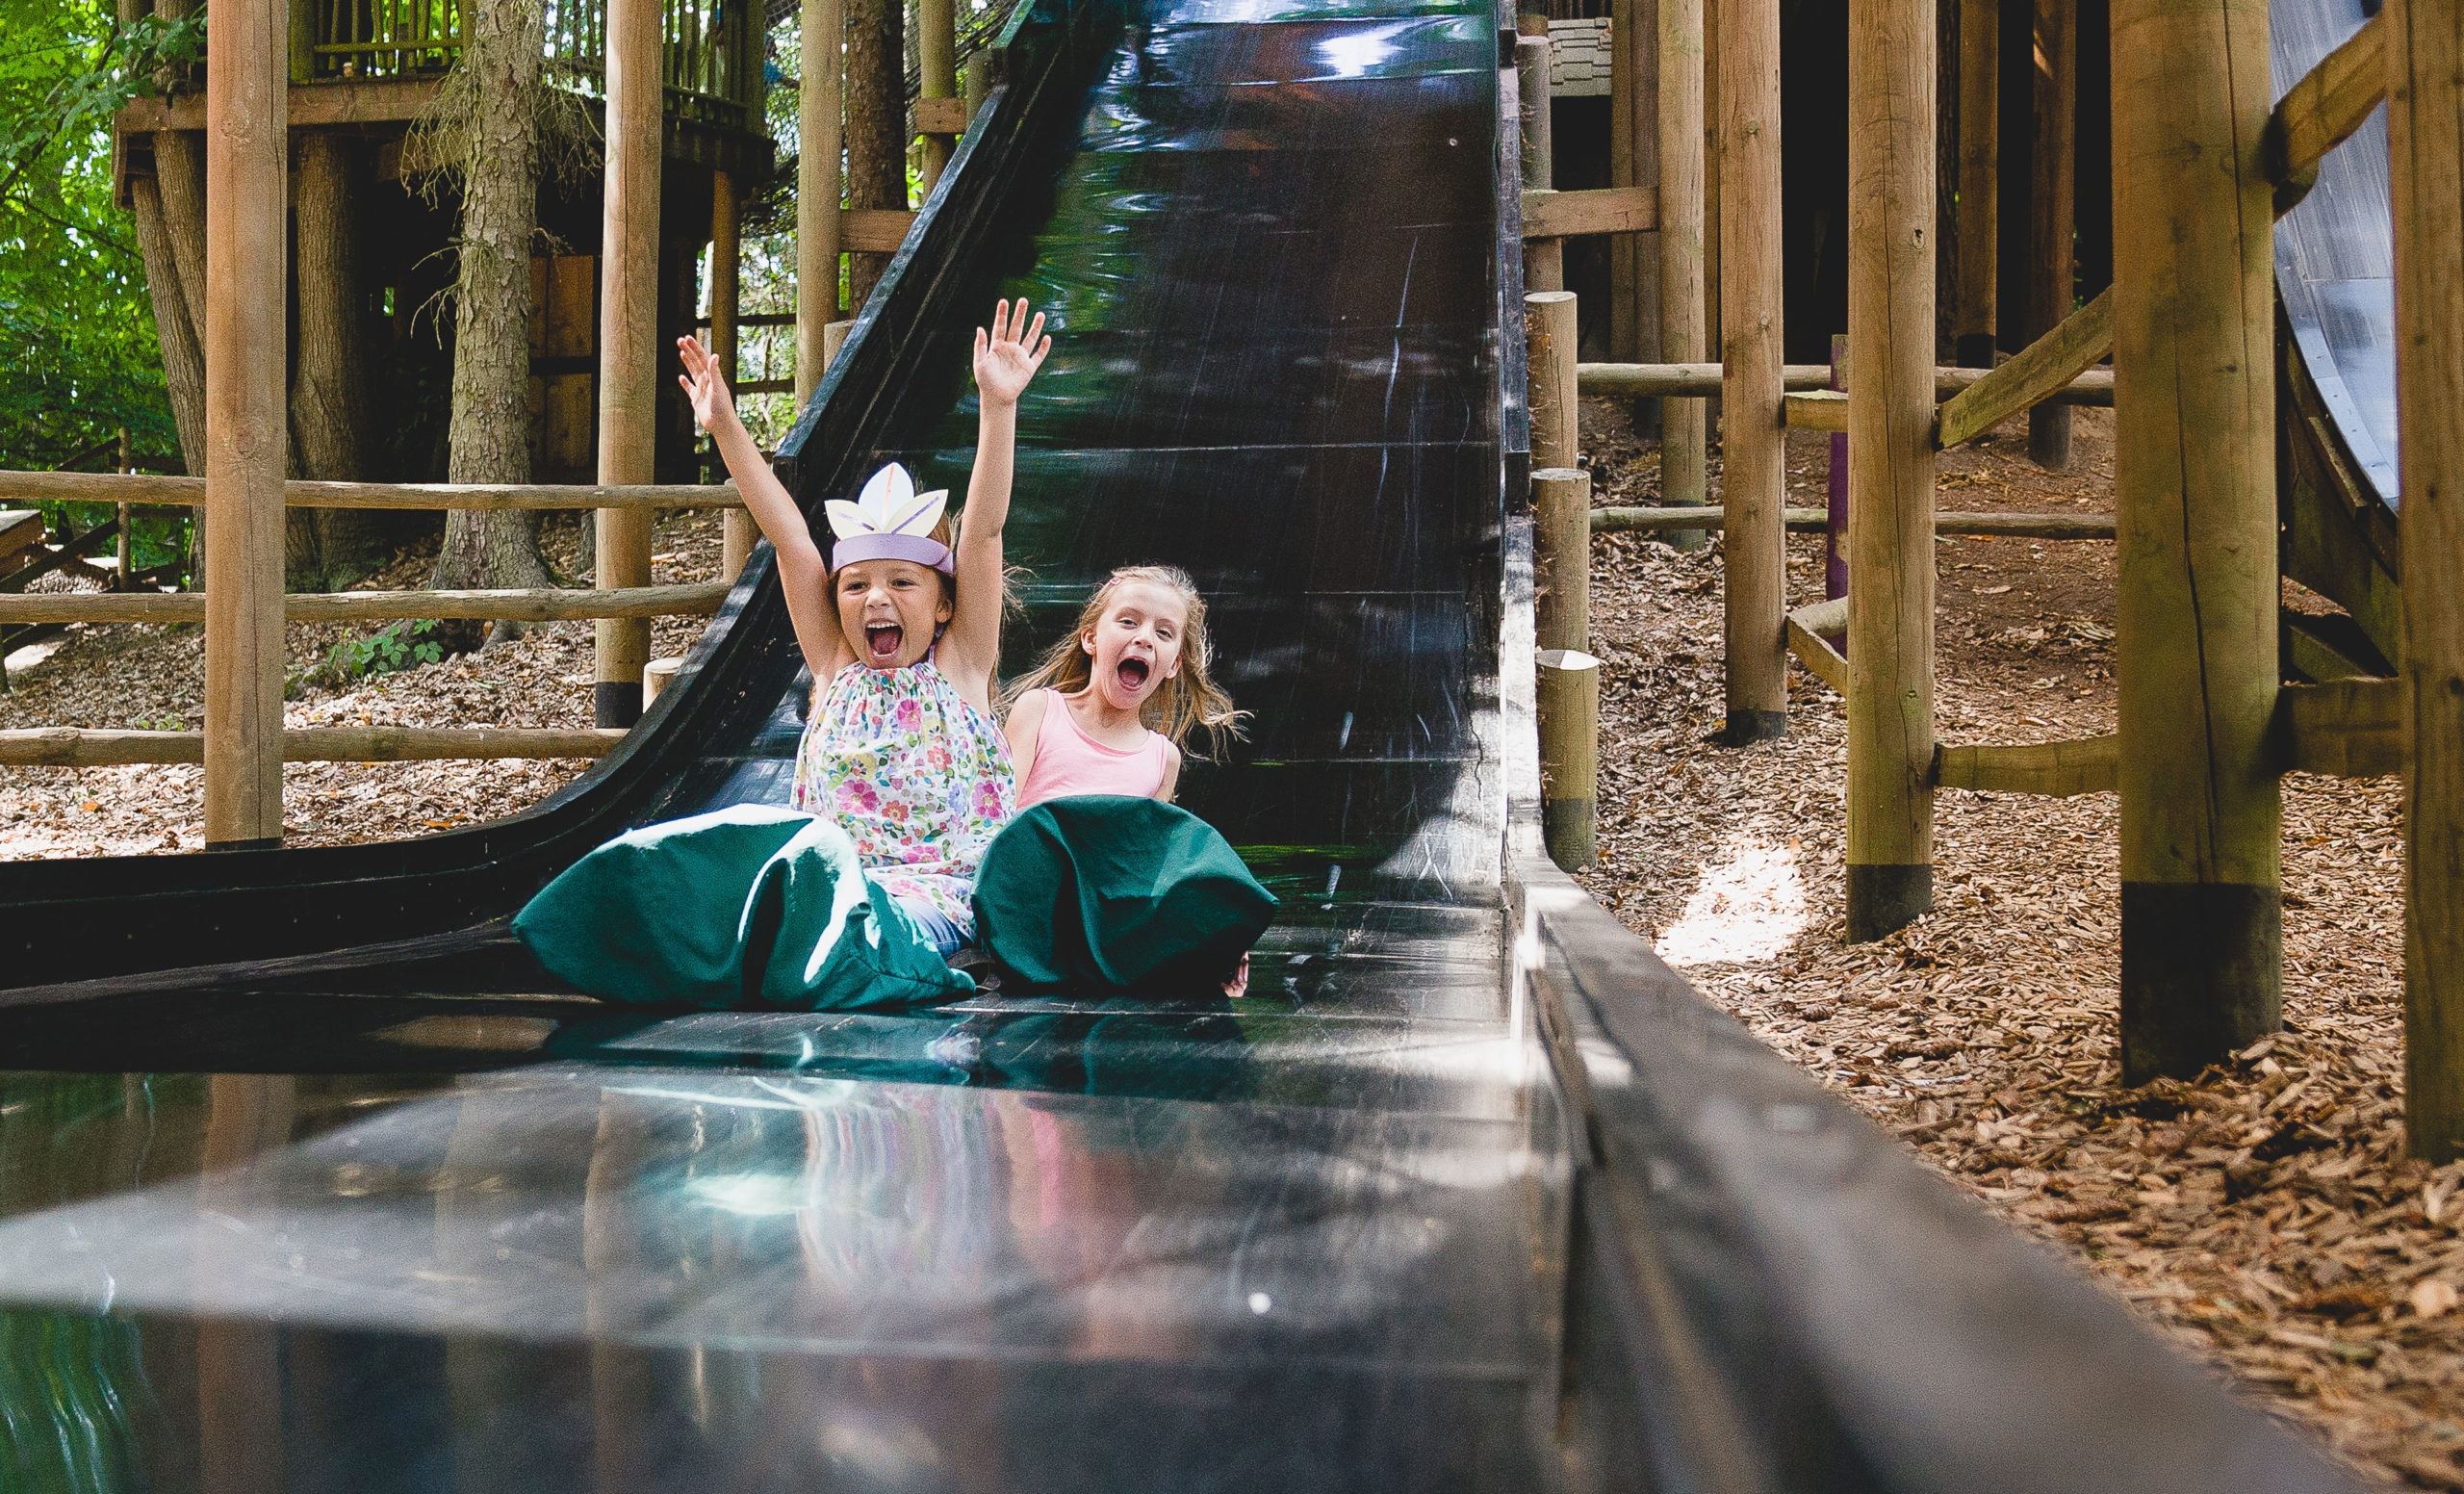 Win tickets to BeWILDerwood Cheshire, yippee!